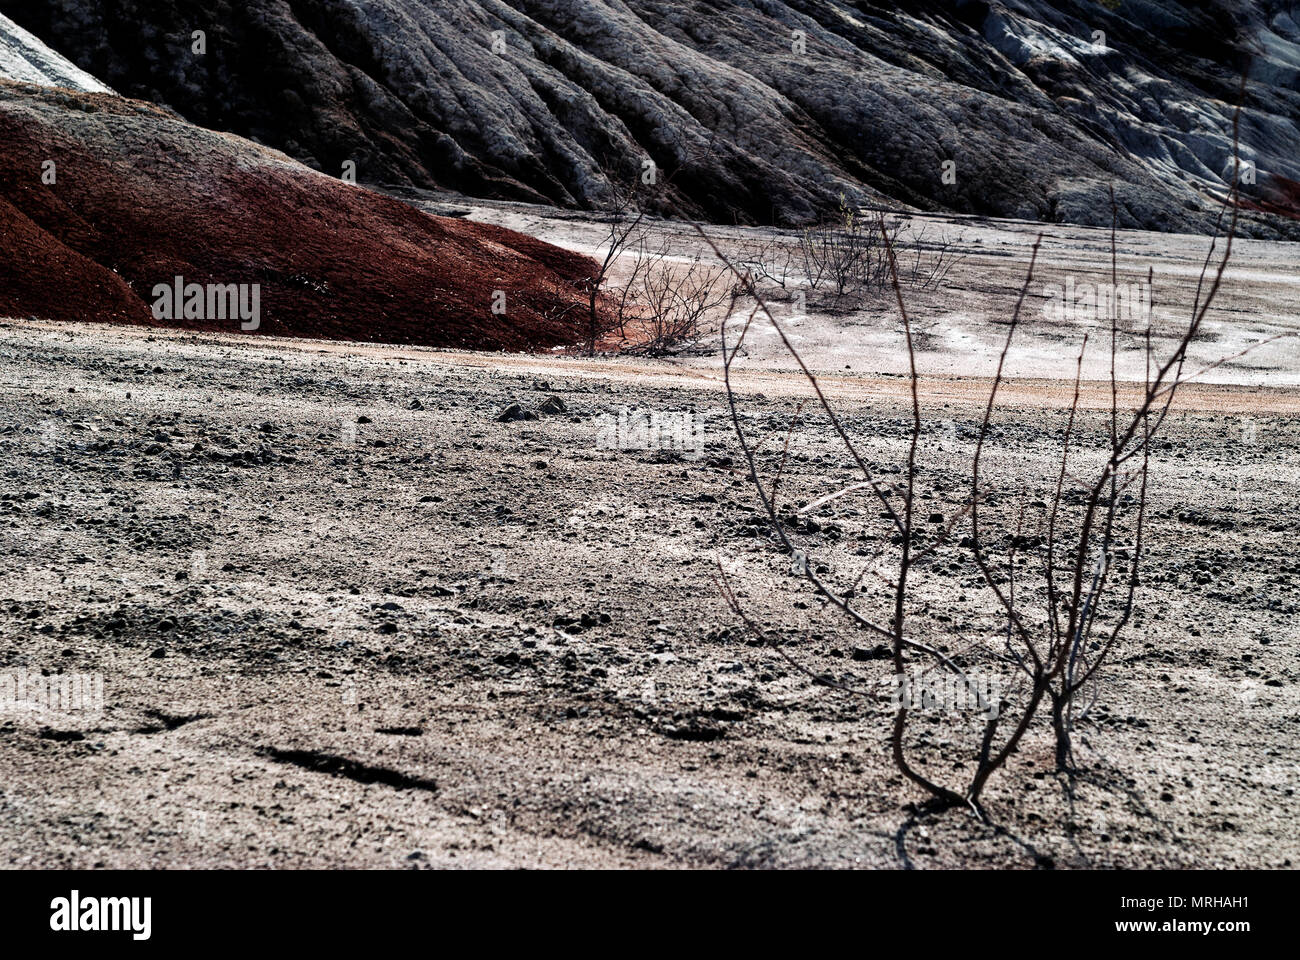 dead bushes in the gloomy weathered desert landscape of dumps of mine workings - Stock Image